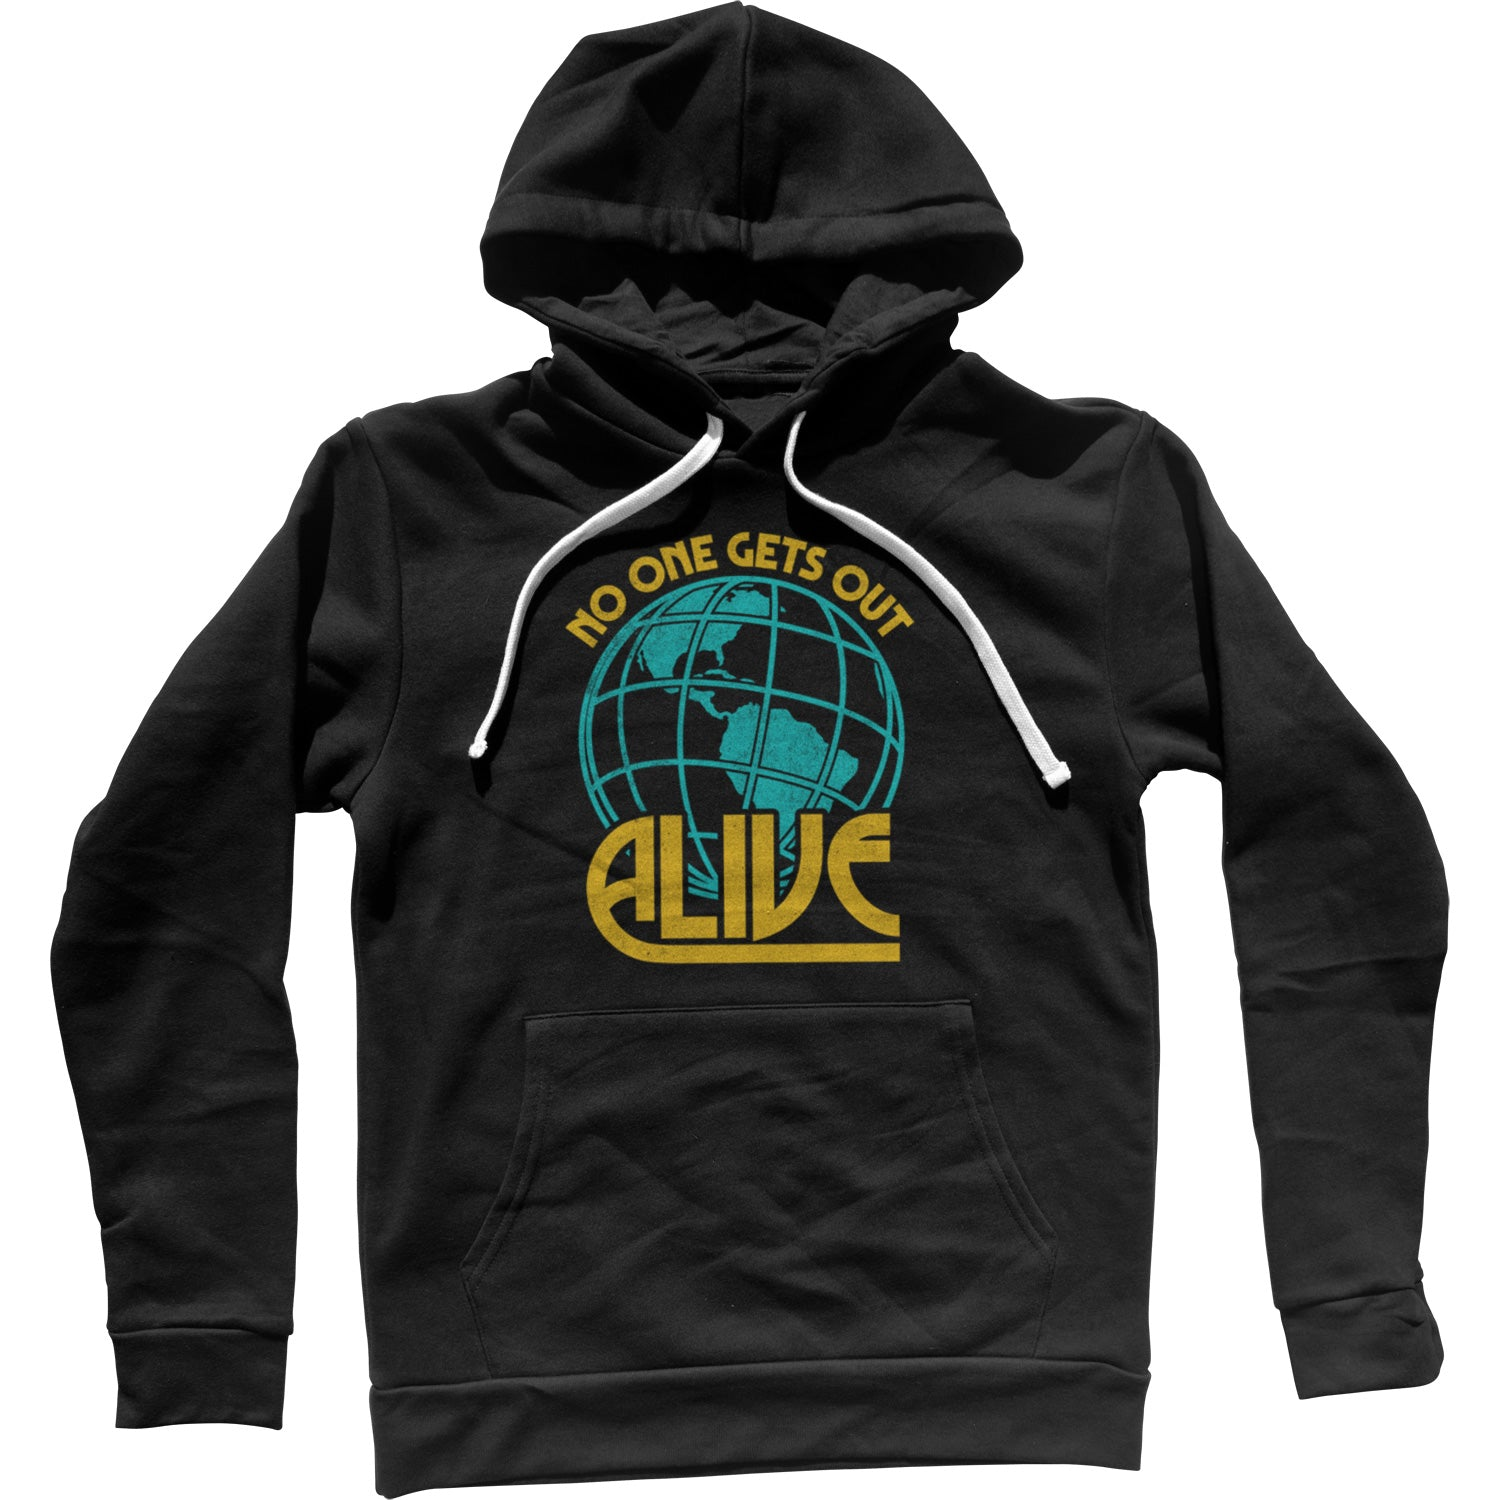 No One Gets Out Alive Unisex Hoodie